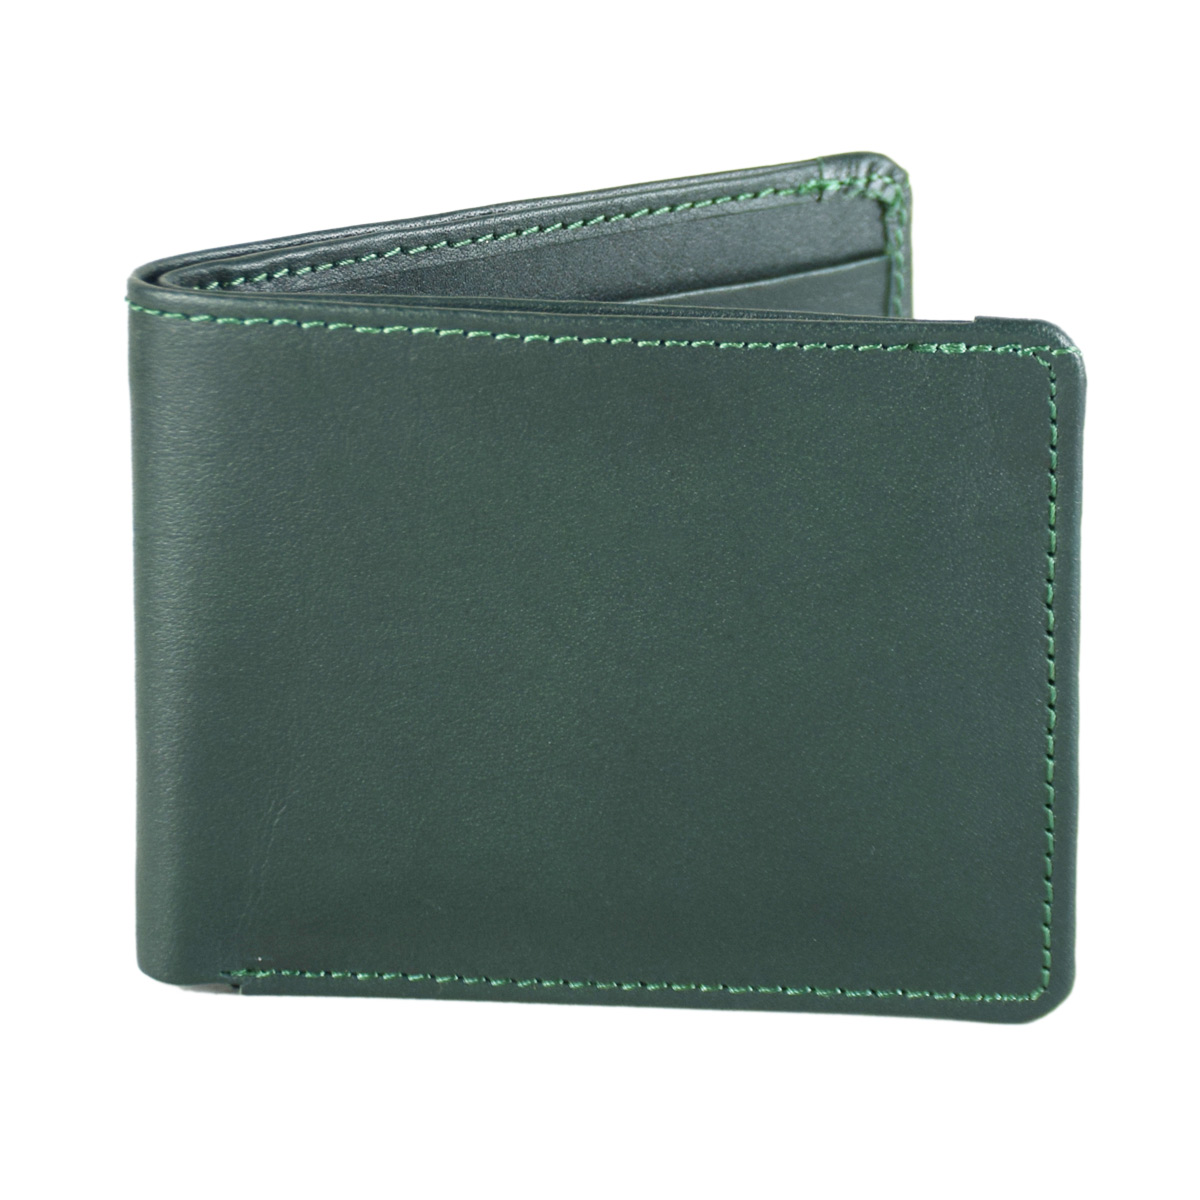 GREEN WALLET WITH SEVERAL POCKETS